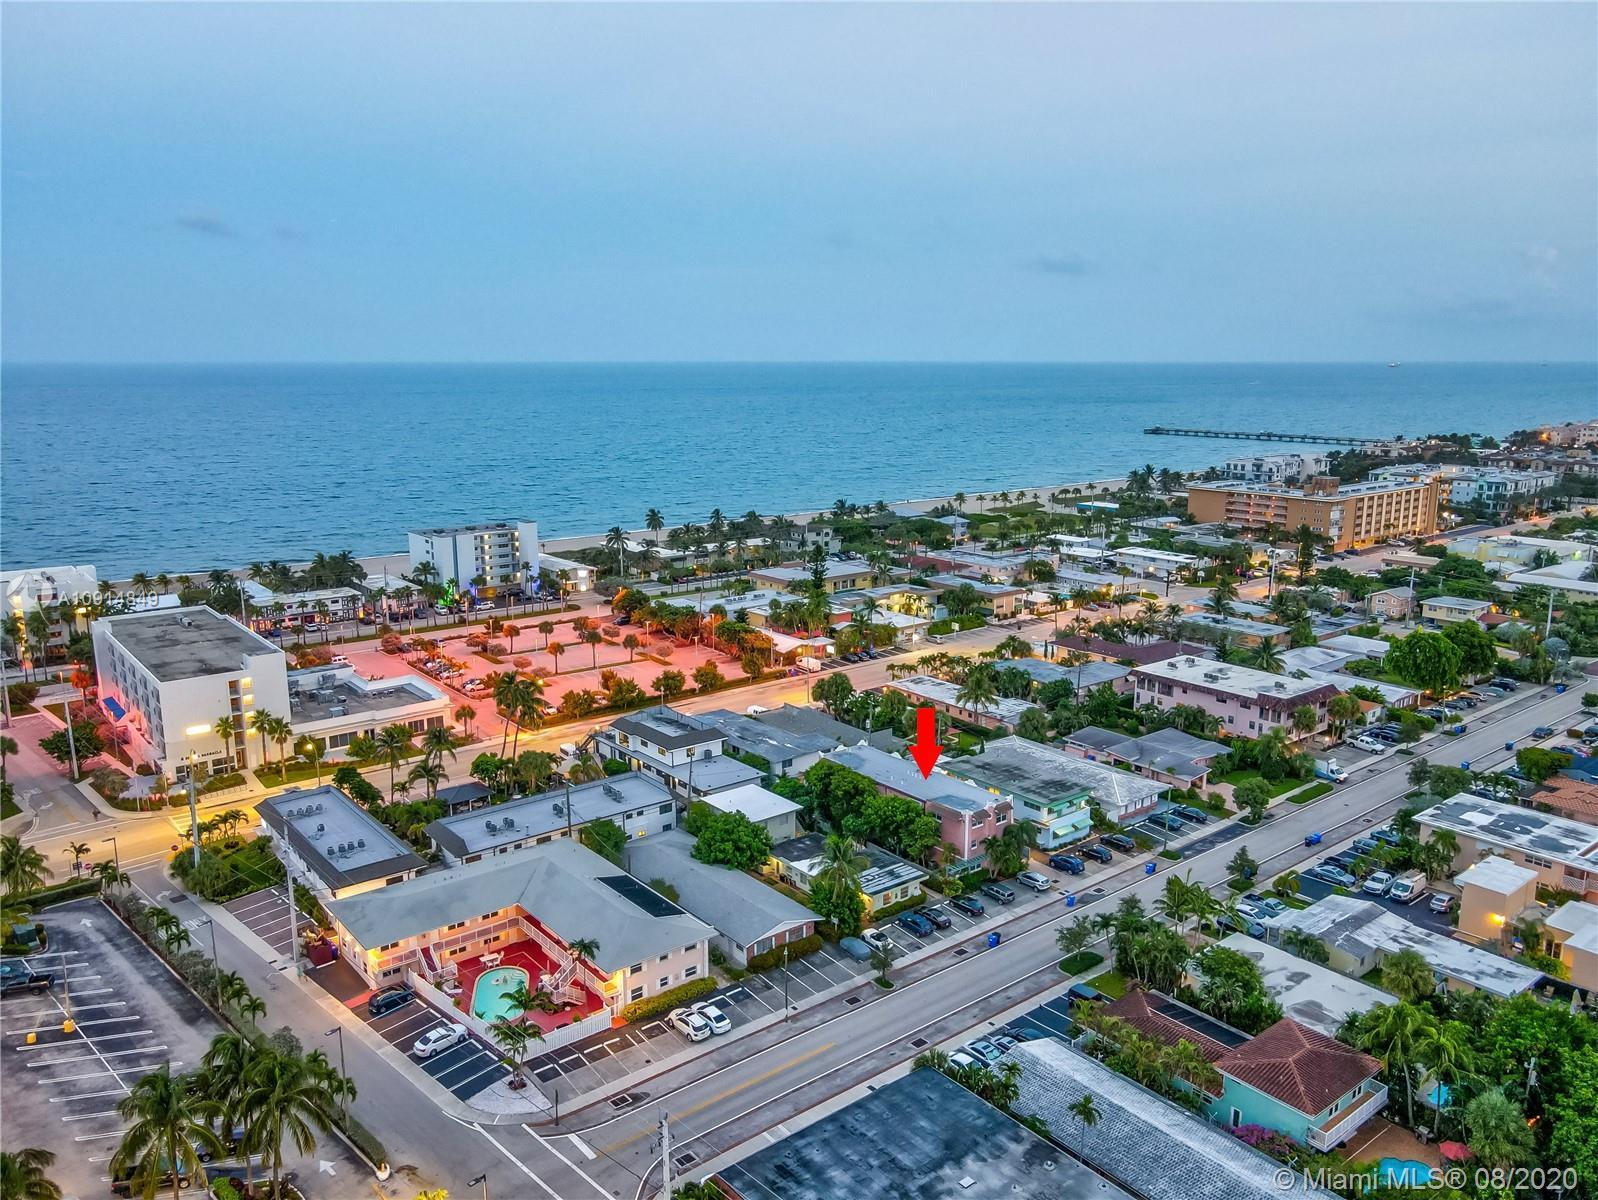 AMAZING TRI-LEVEL TOWNHOME IN THE HEART OF LAUDERDALE BY THE SEA. WALKING DISTANCE TO EVERYTHING! TH